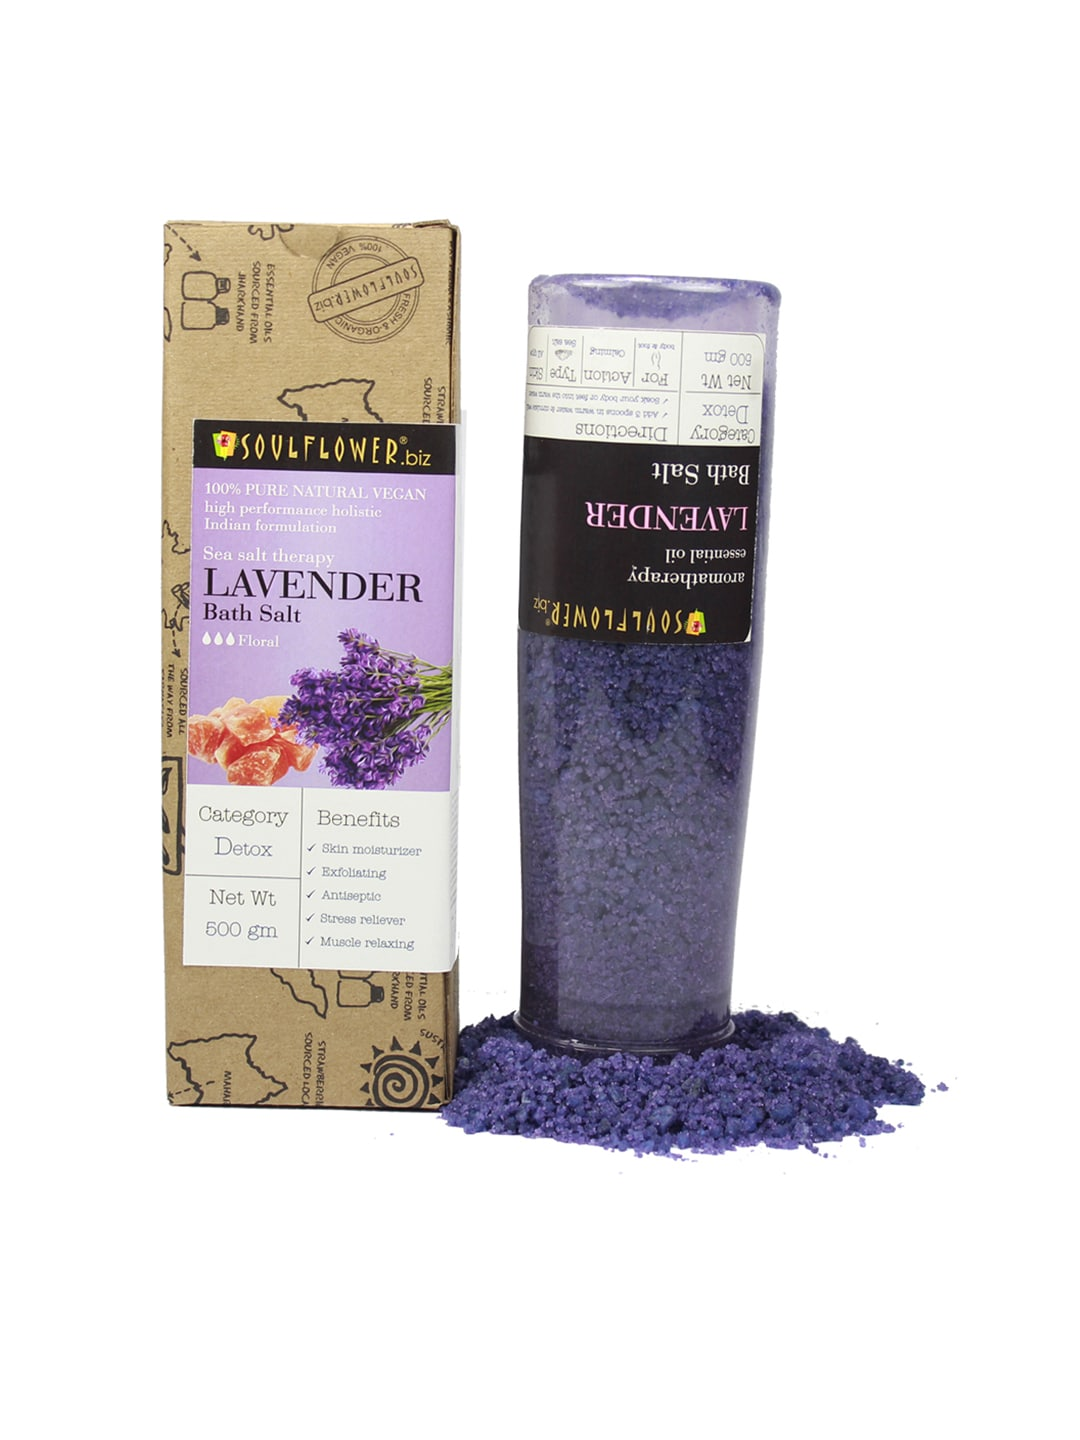 Soulflower Unisex Pack of 2 Lavender Bath Salt image